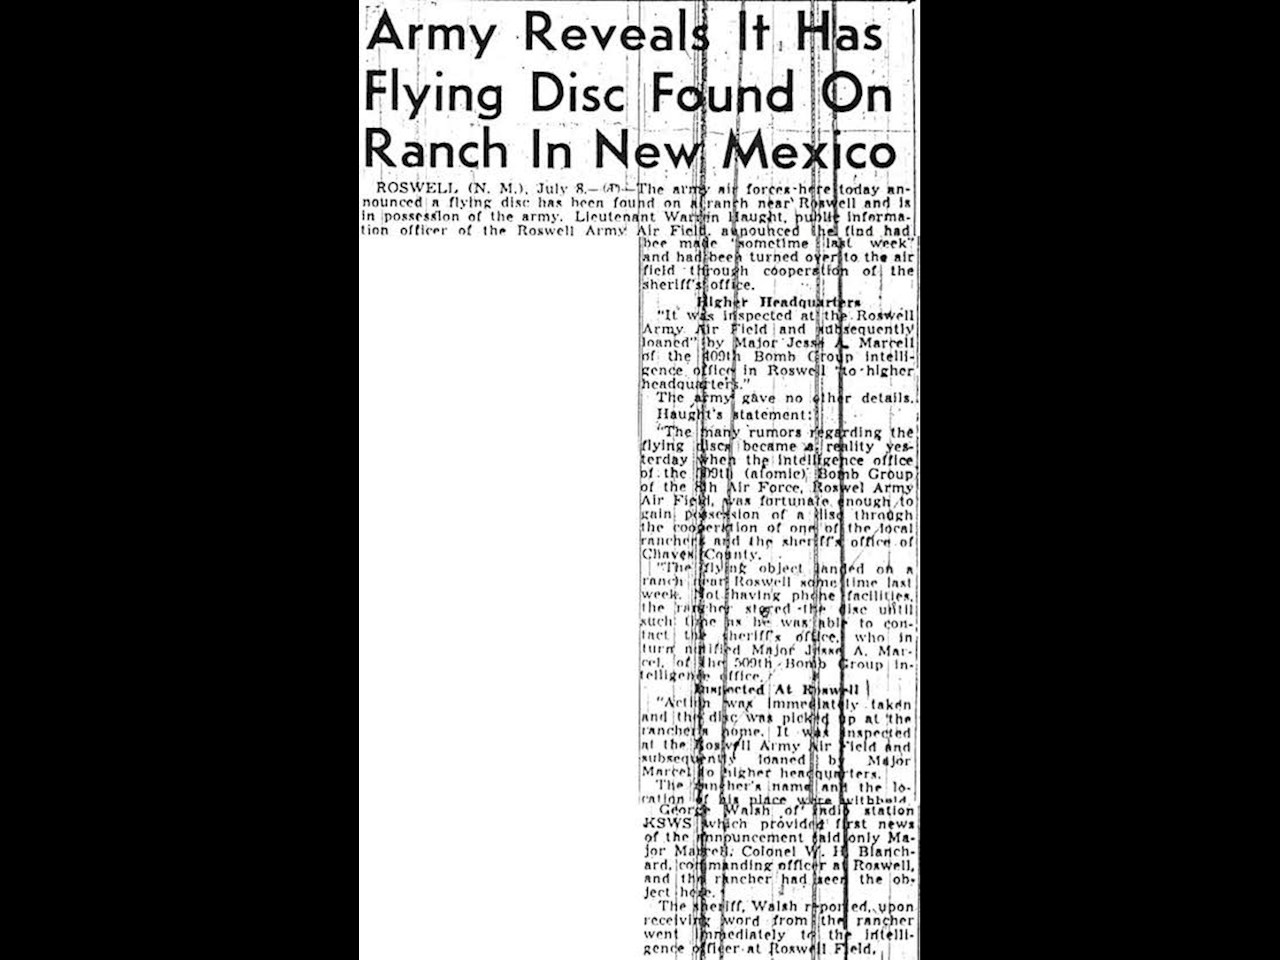 Another article detailing the Roswell Army Air Field statements